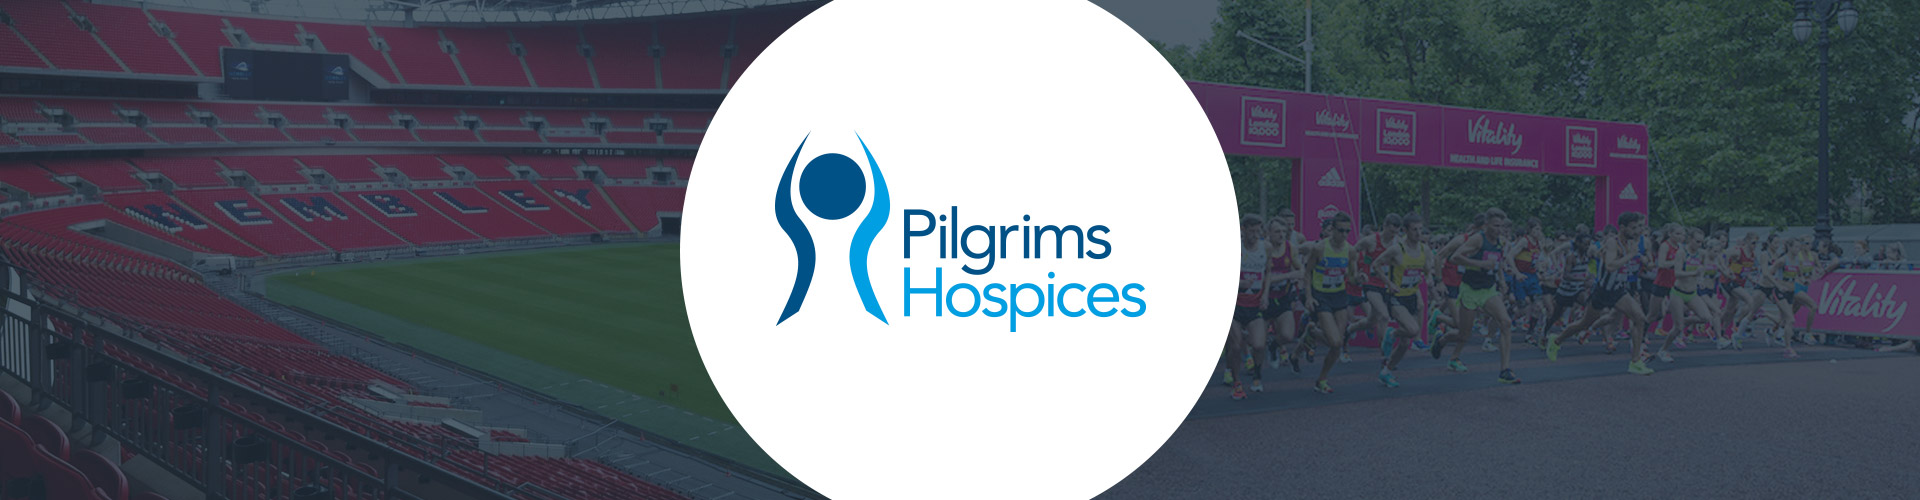 PageSuite Raise over £600 for Pilgrims Hospices